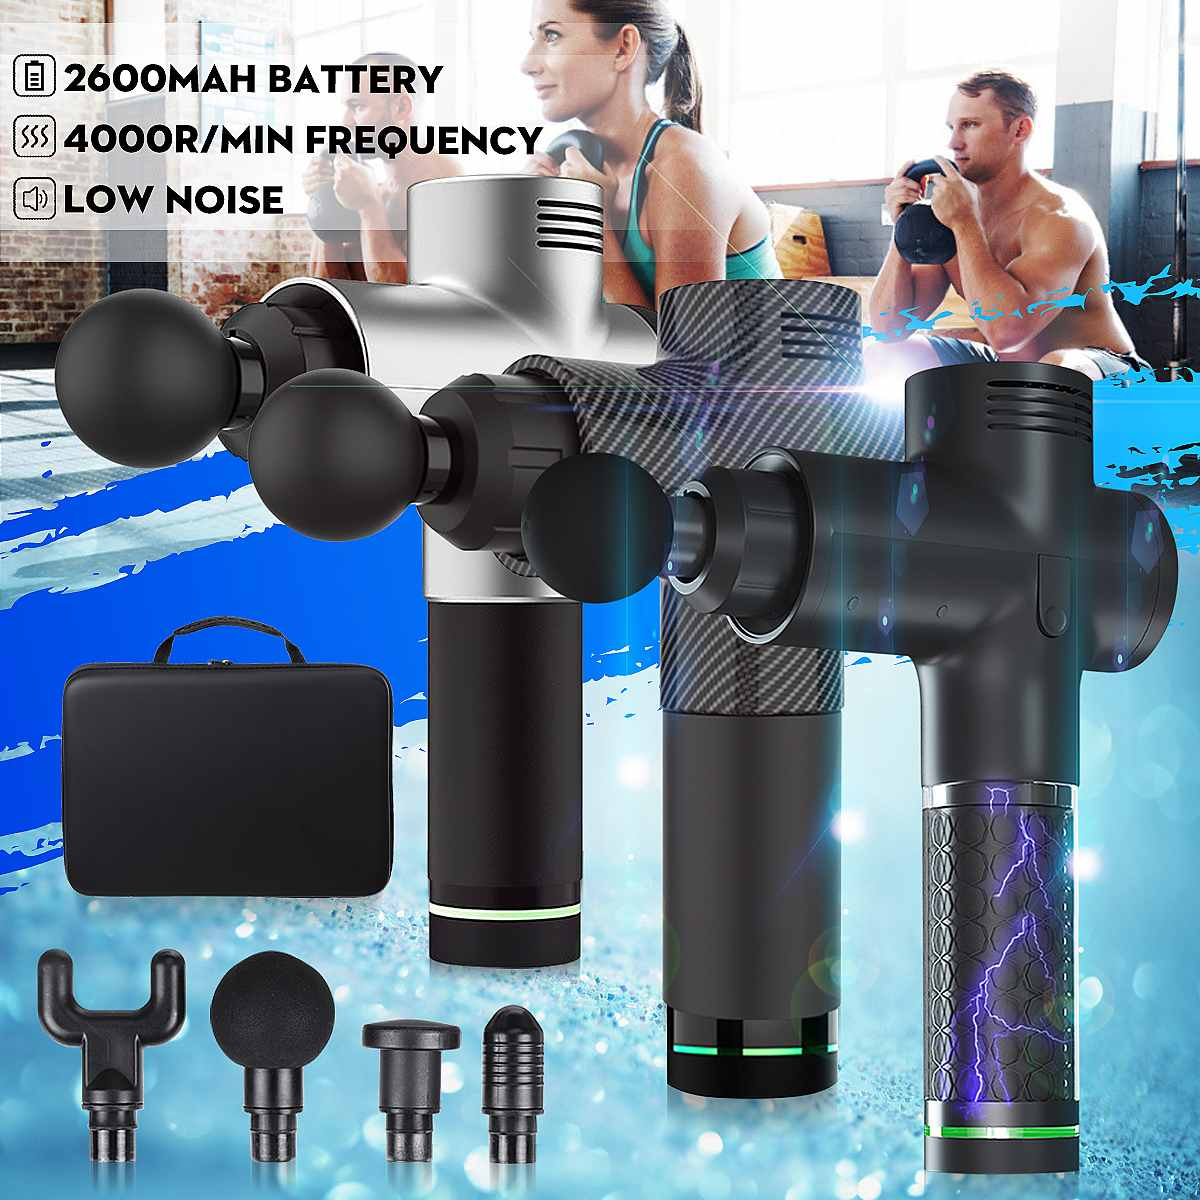 4000r/min LED Indicator Massage Guns 3 Gears Muscle Massager Pain Sport Massage Machine Relax Body Slimming Relief 4 Heads(China)